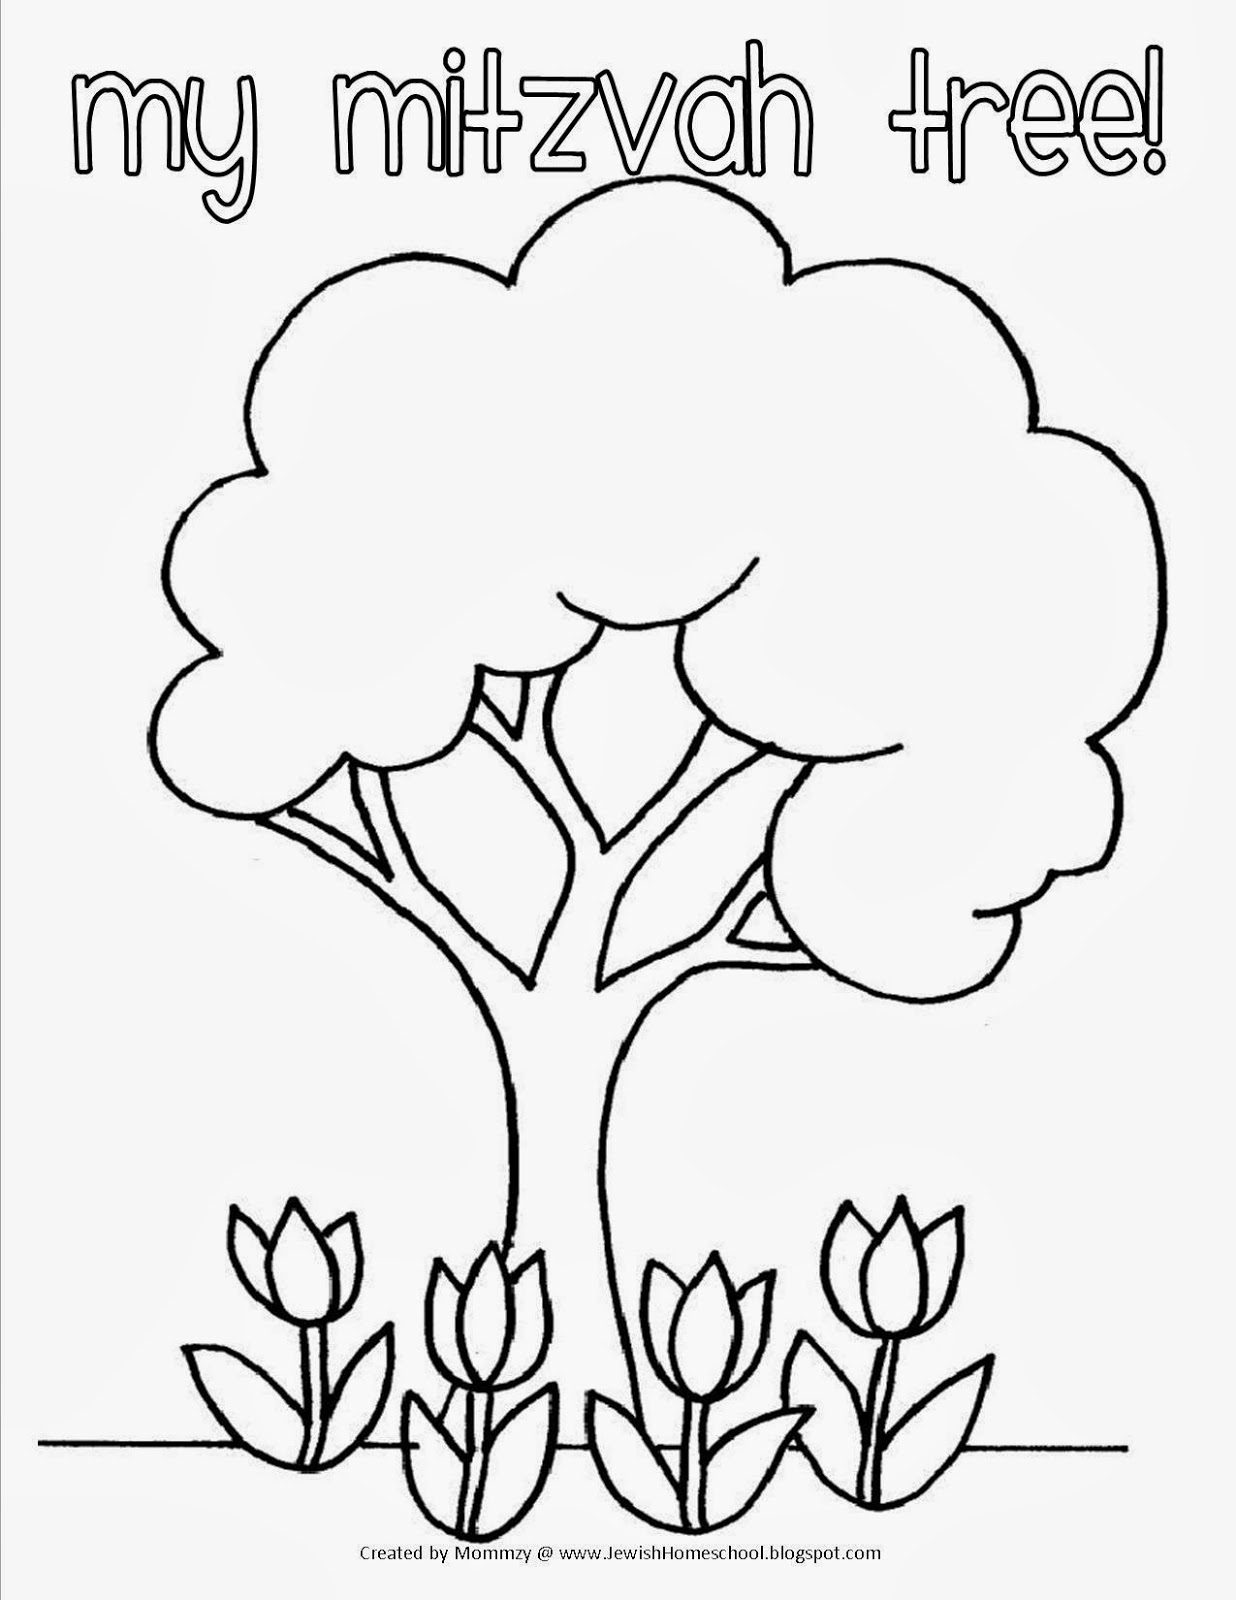 Rain Rain Go Away Rymes Printable Coloring Pages